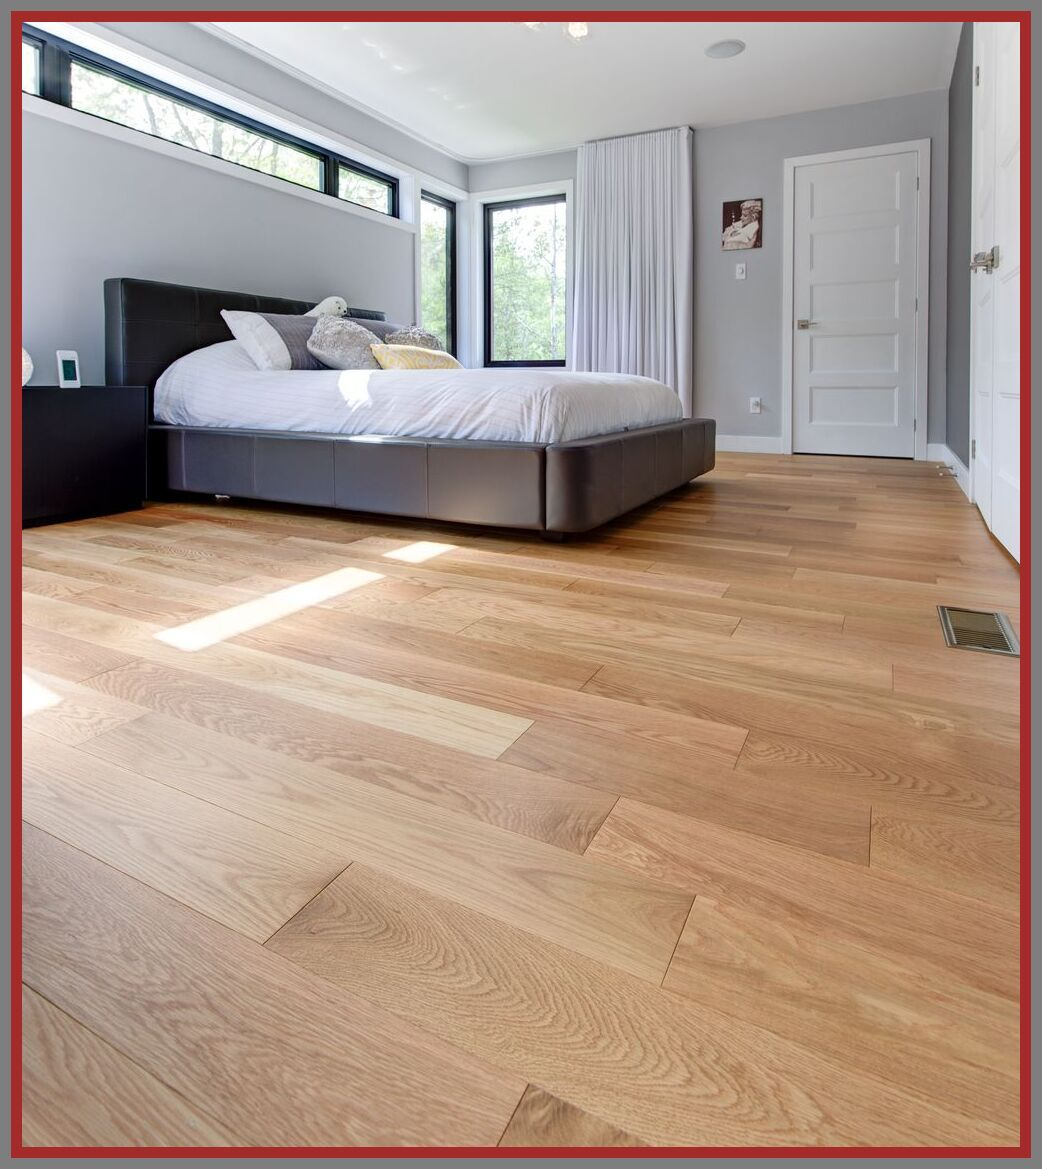 31 Reference Of Hardwood Flooring In All Bedrooms In 2020 Wood Floors Wide Plank Hardwood Floors Hardwood Bedroom